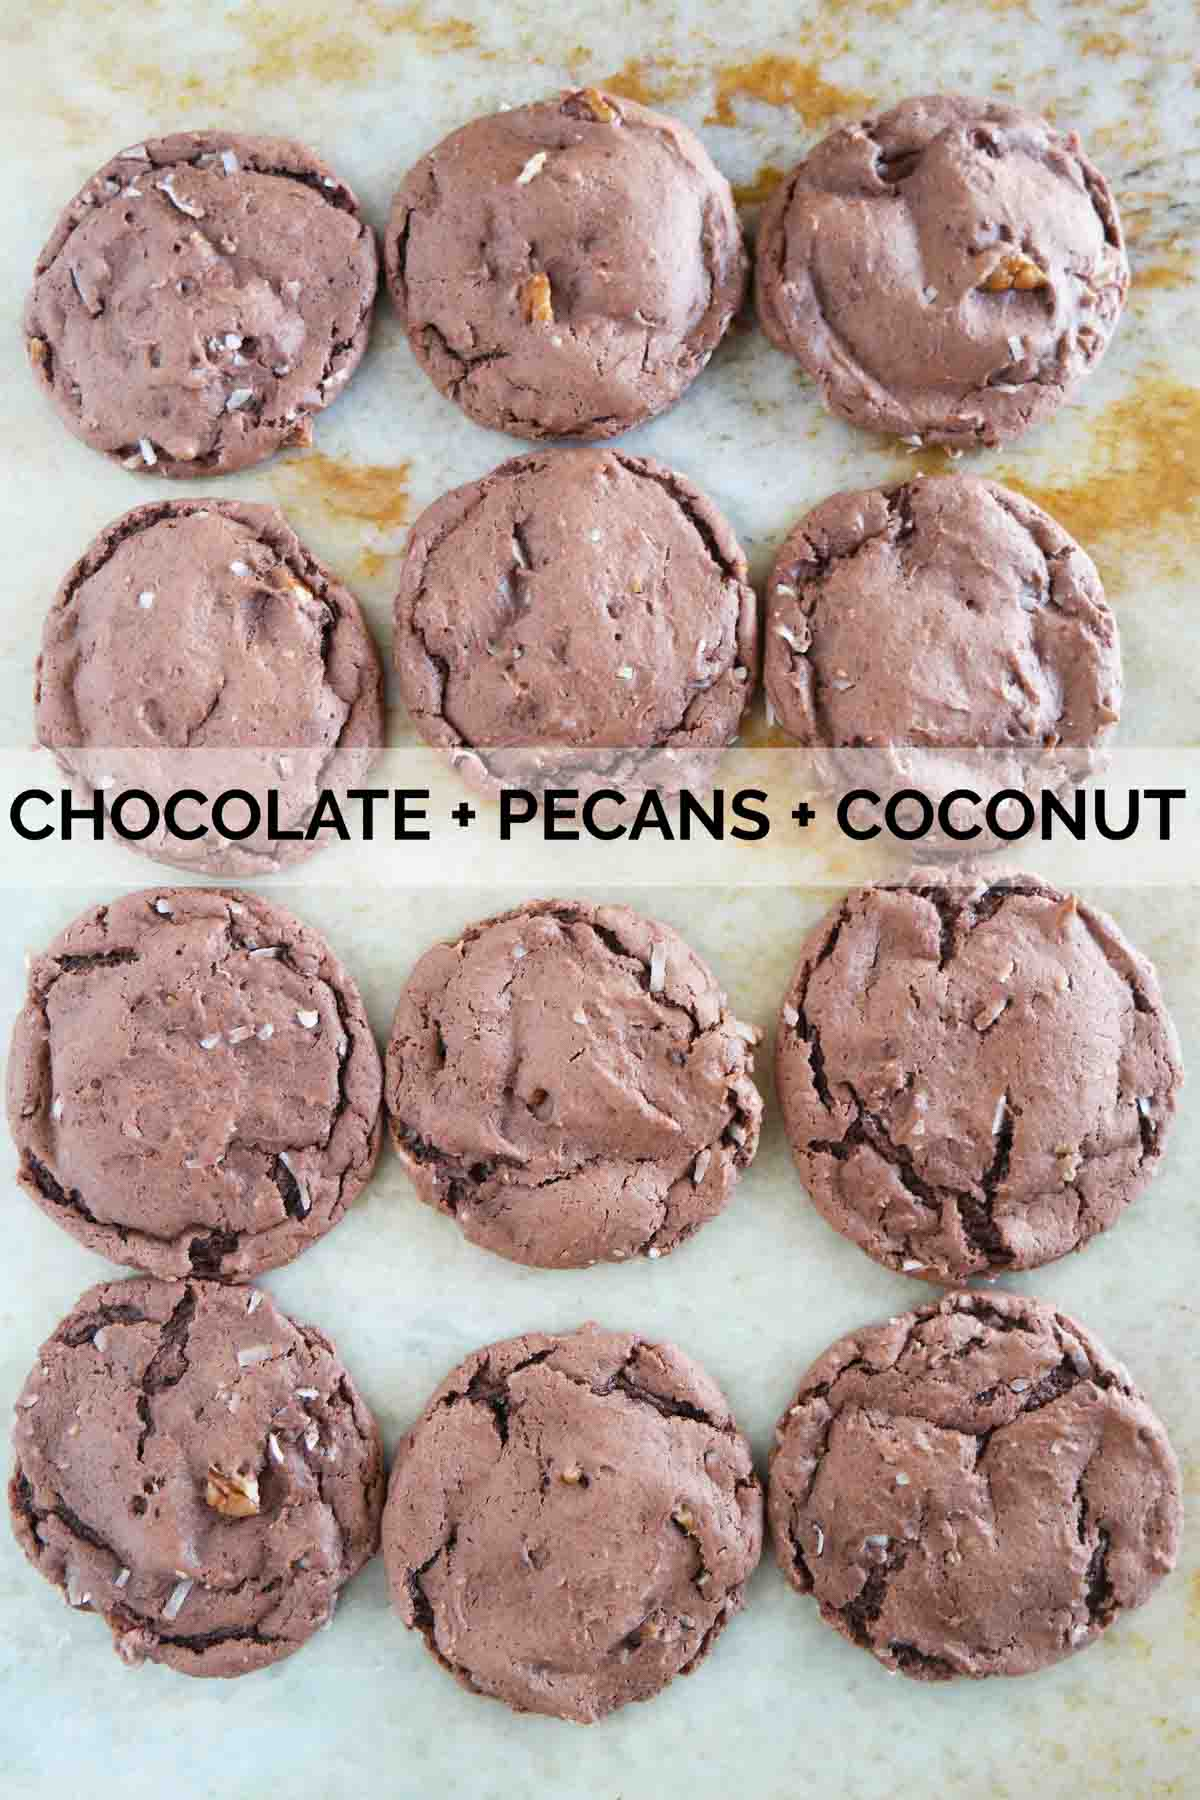 Cake mix cookies made from chocolate cake mix and pecans and coconut